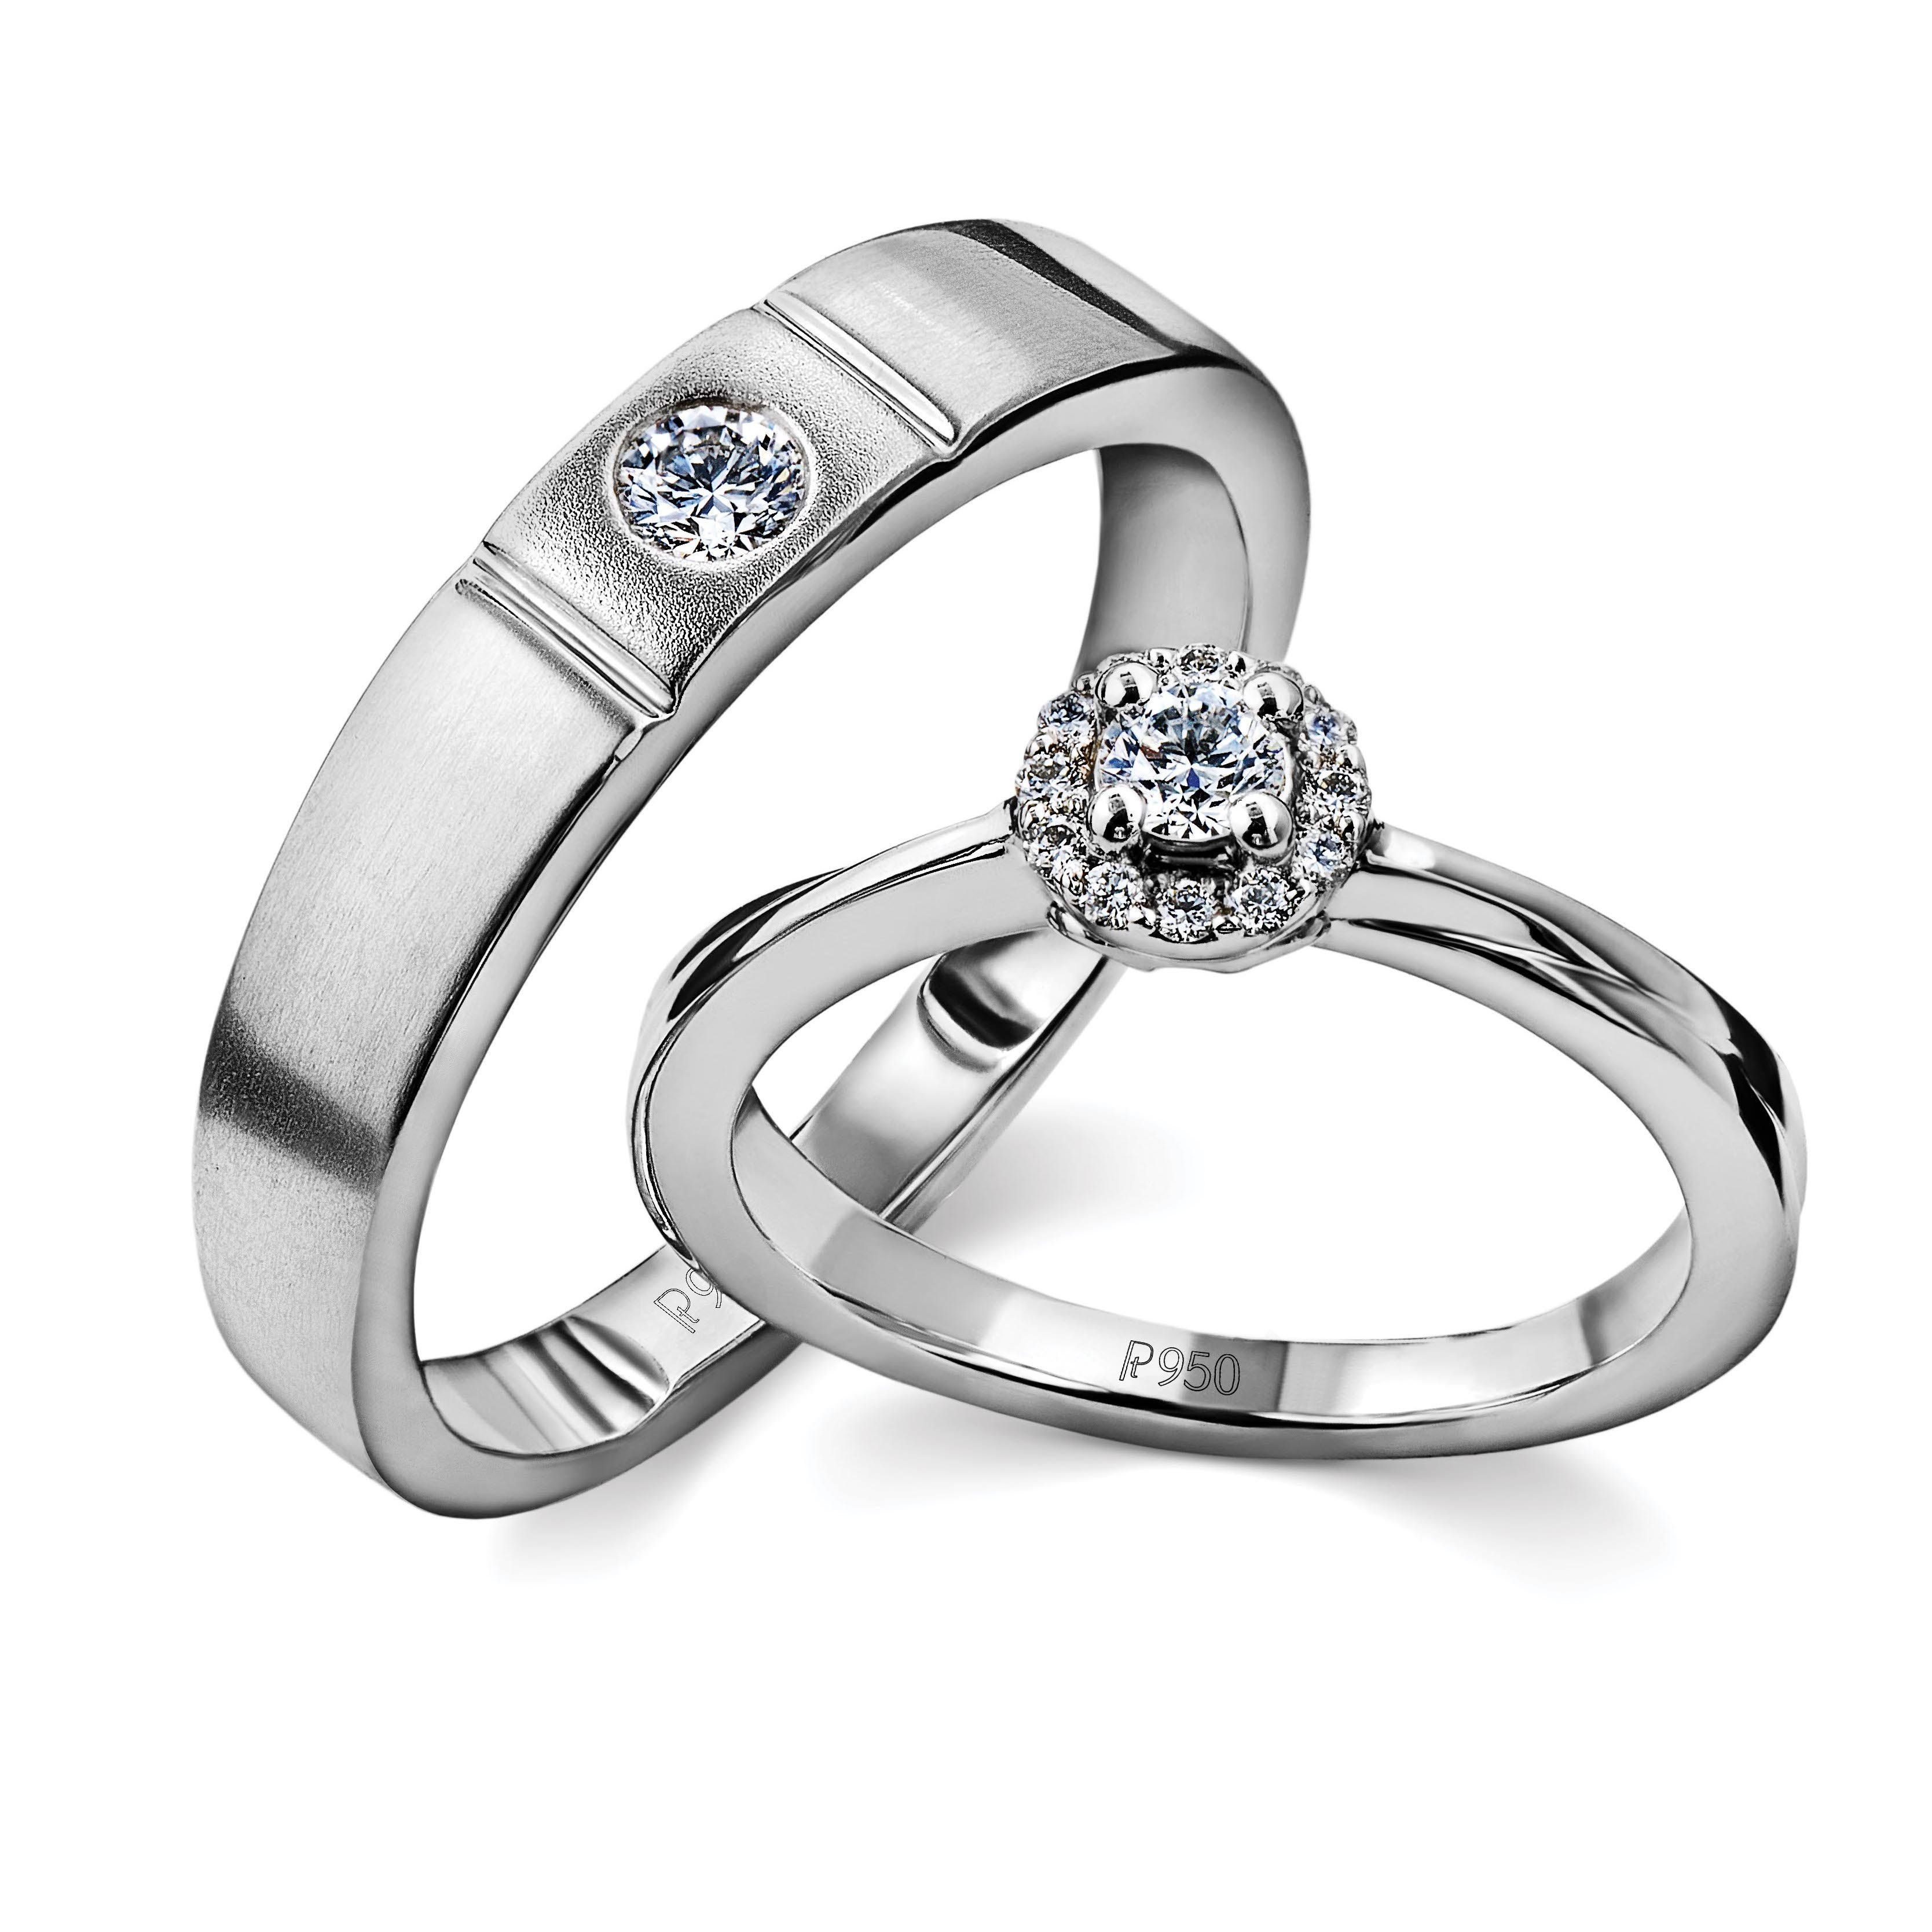 Platinum Rings For Couple With Single Diamonds Jl Pt 593 Engagement Rings Couple Couple Ring Design Couple Wedding Rings